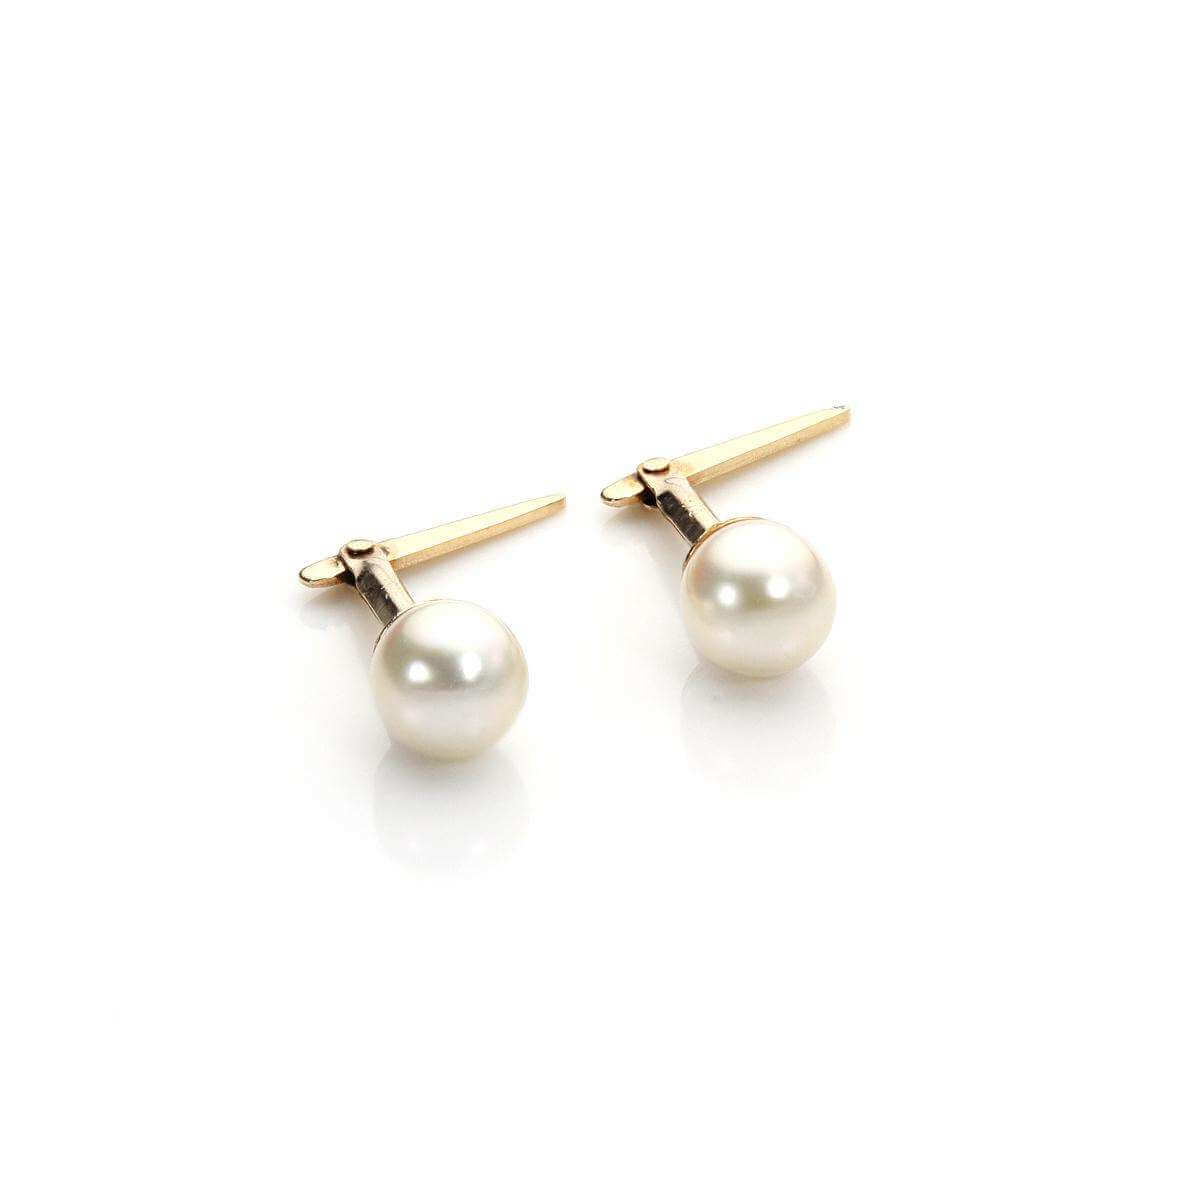 Andralok 9ct Yellow Gold Cultured Pearl 4mm Stud Earrings